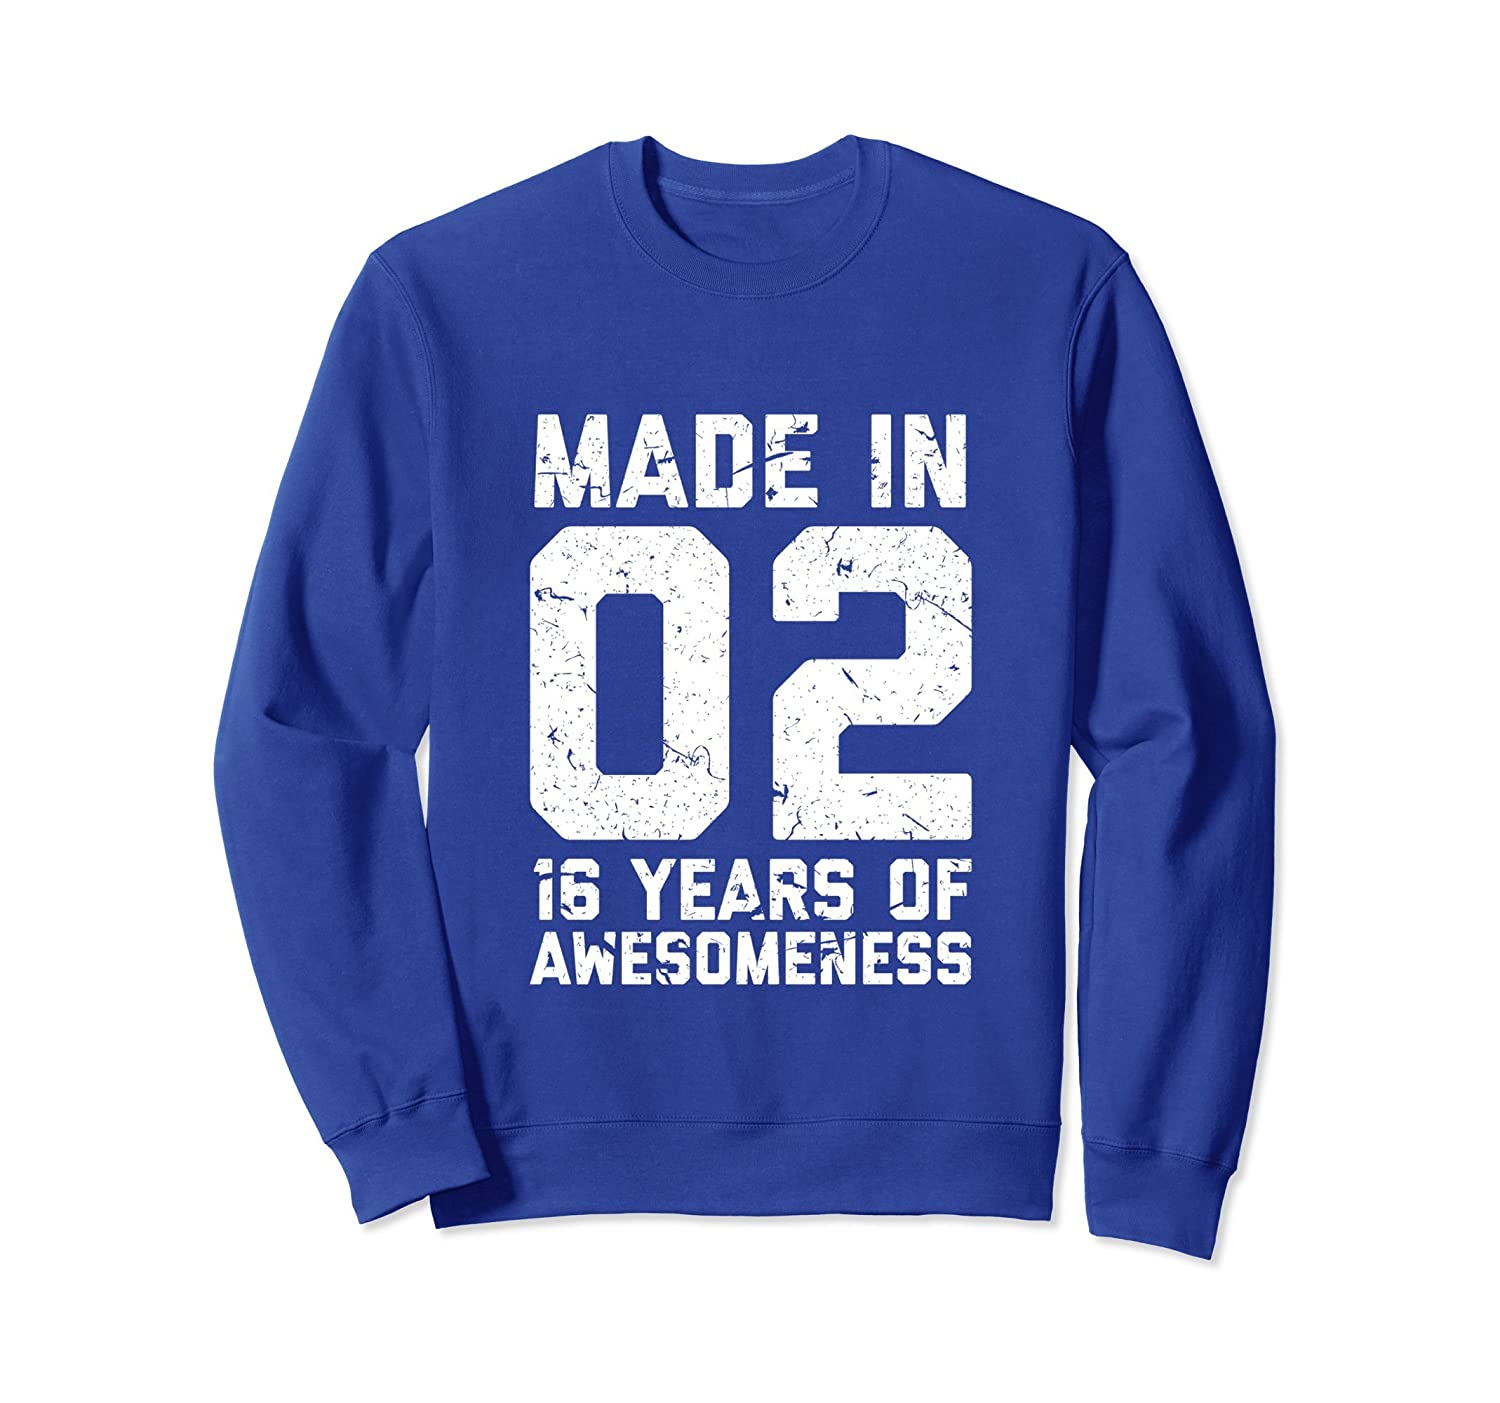 16th Birthday Sweatshirt Gift Girl Boy Age 16 Year Old Girls-ah my shirt one gift